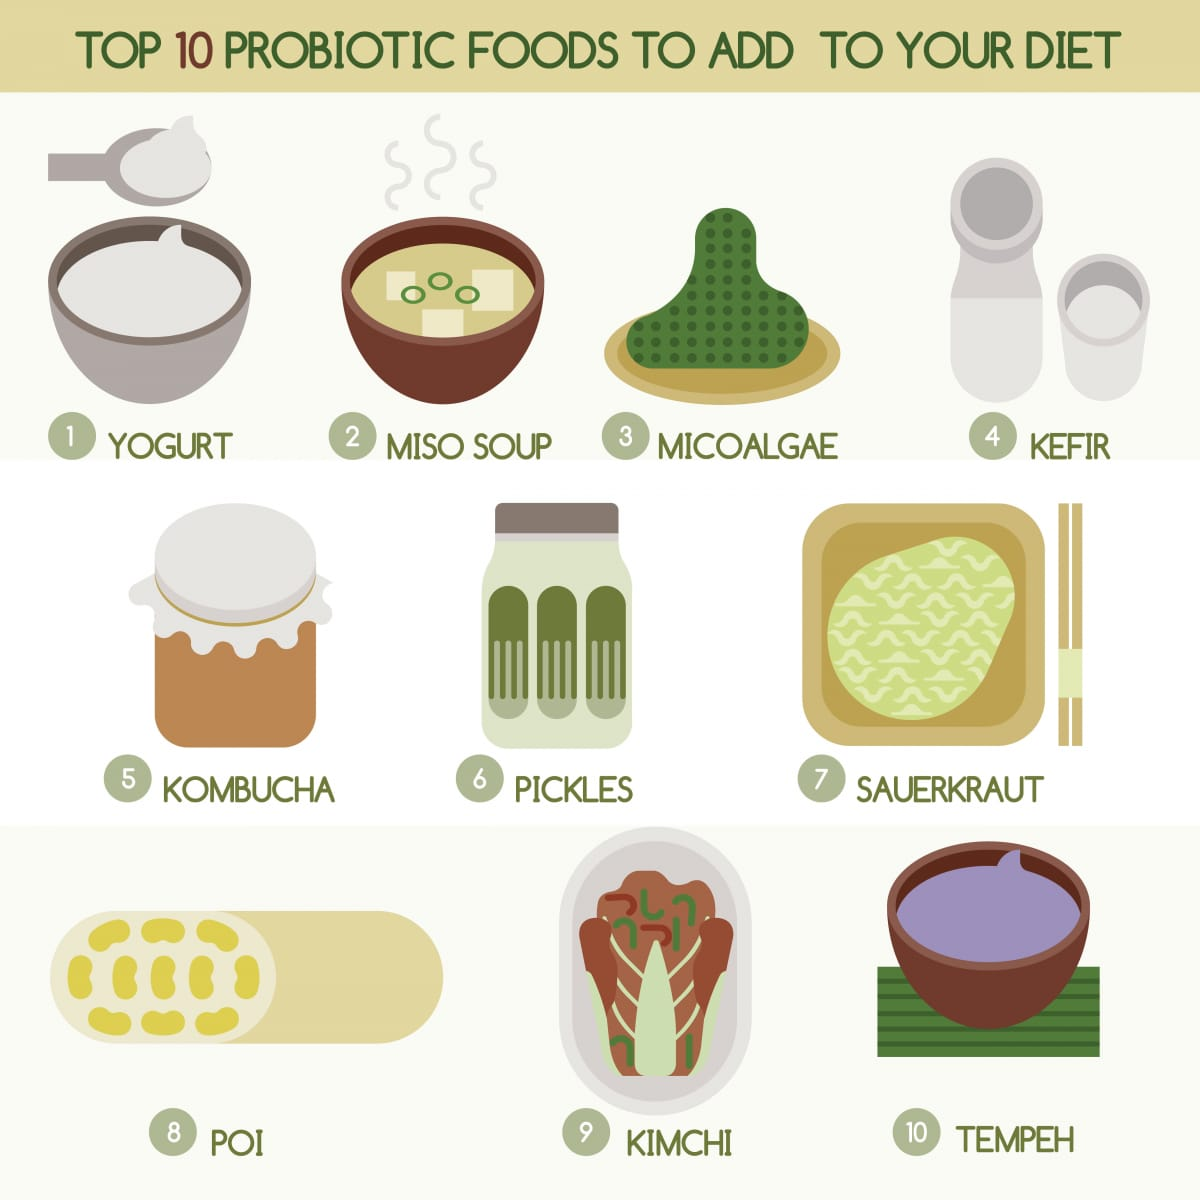 Top 10 Probiotic Foods